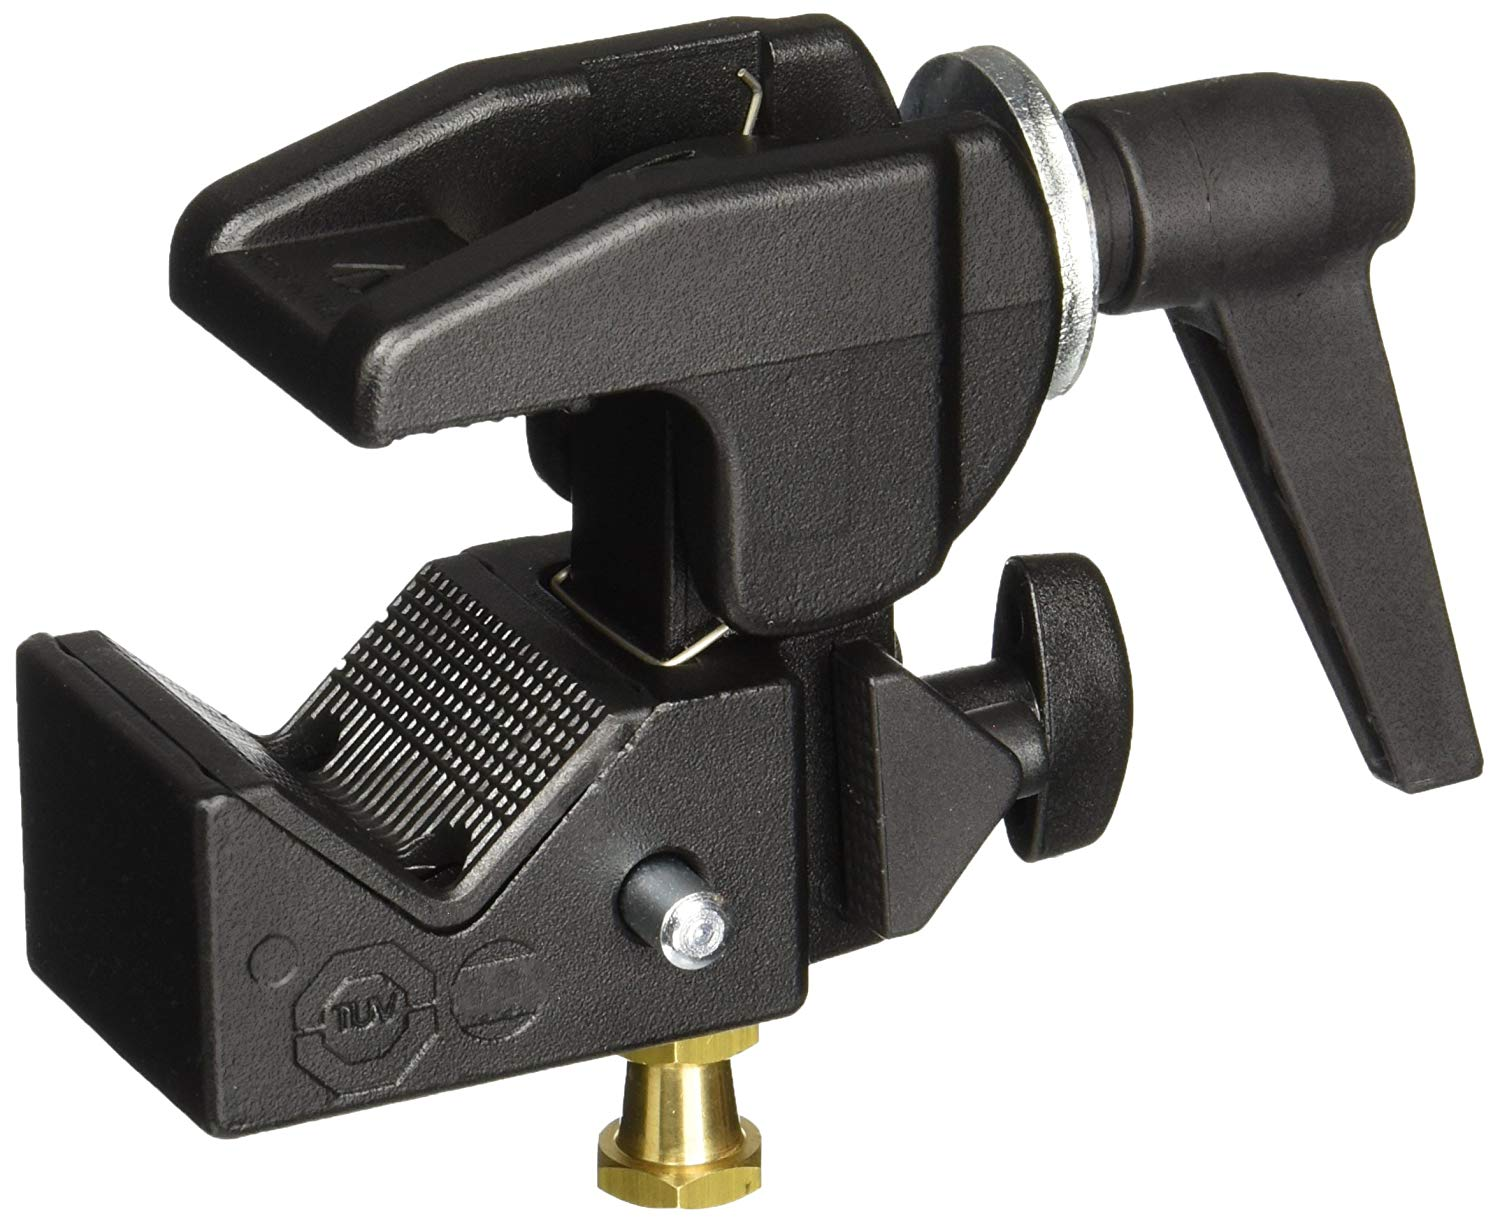 Manfrotto Super Clamps (with studs)